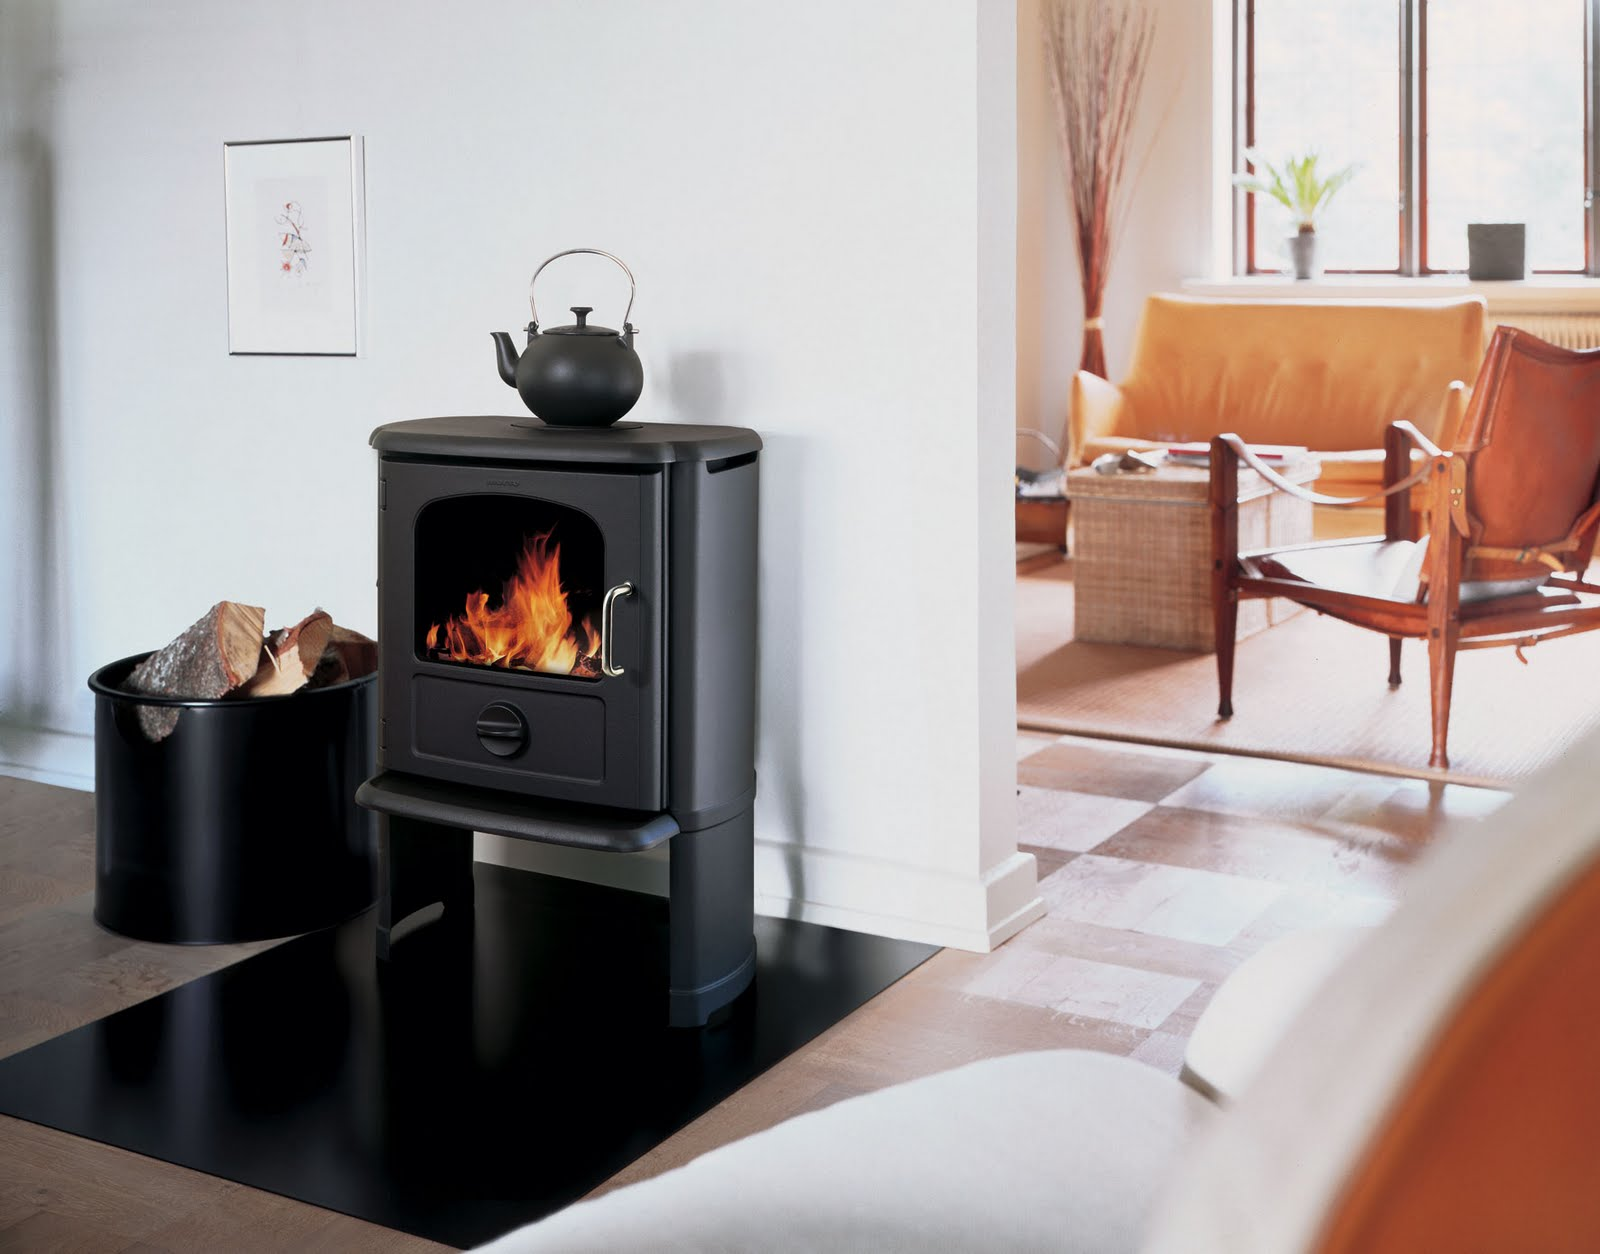 The Best Wood Stoves: How Will You Pick The Right One? 3142